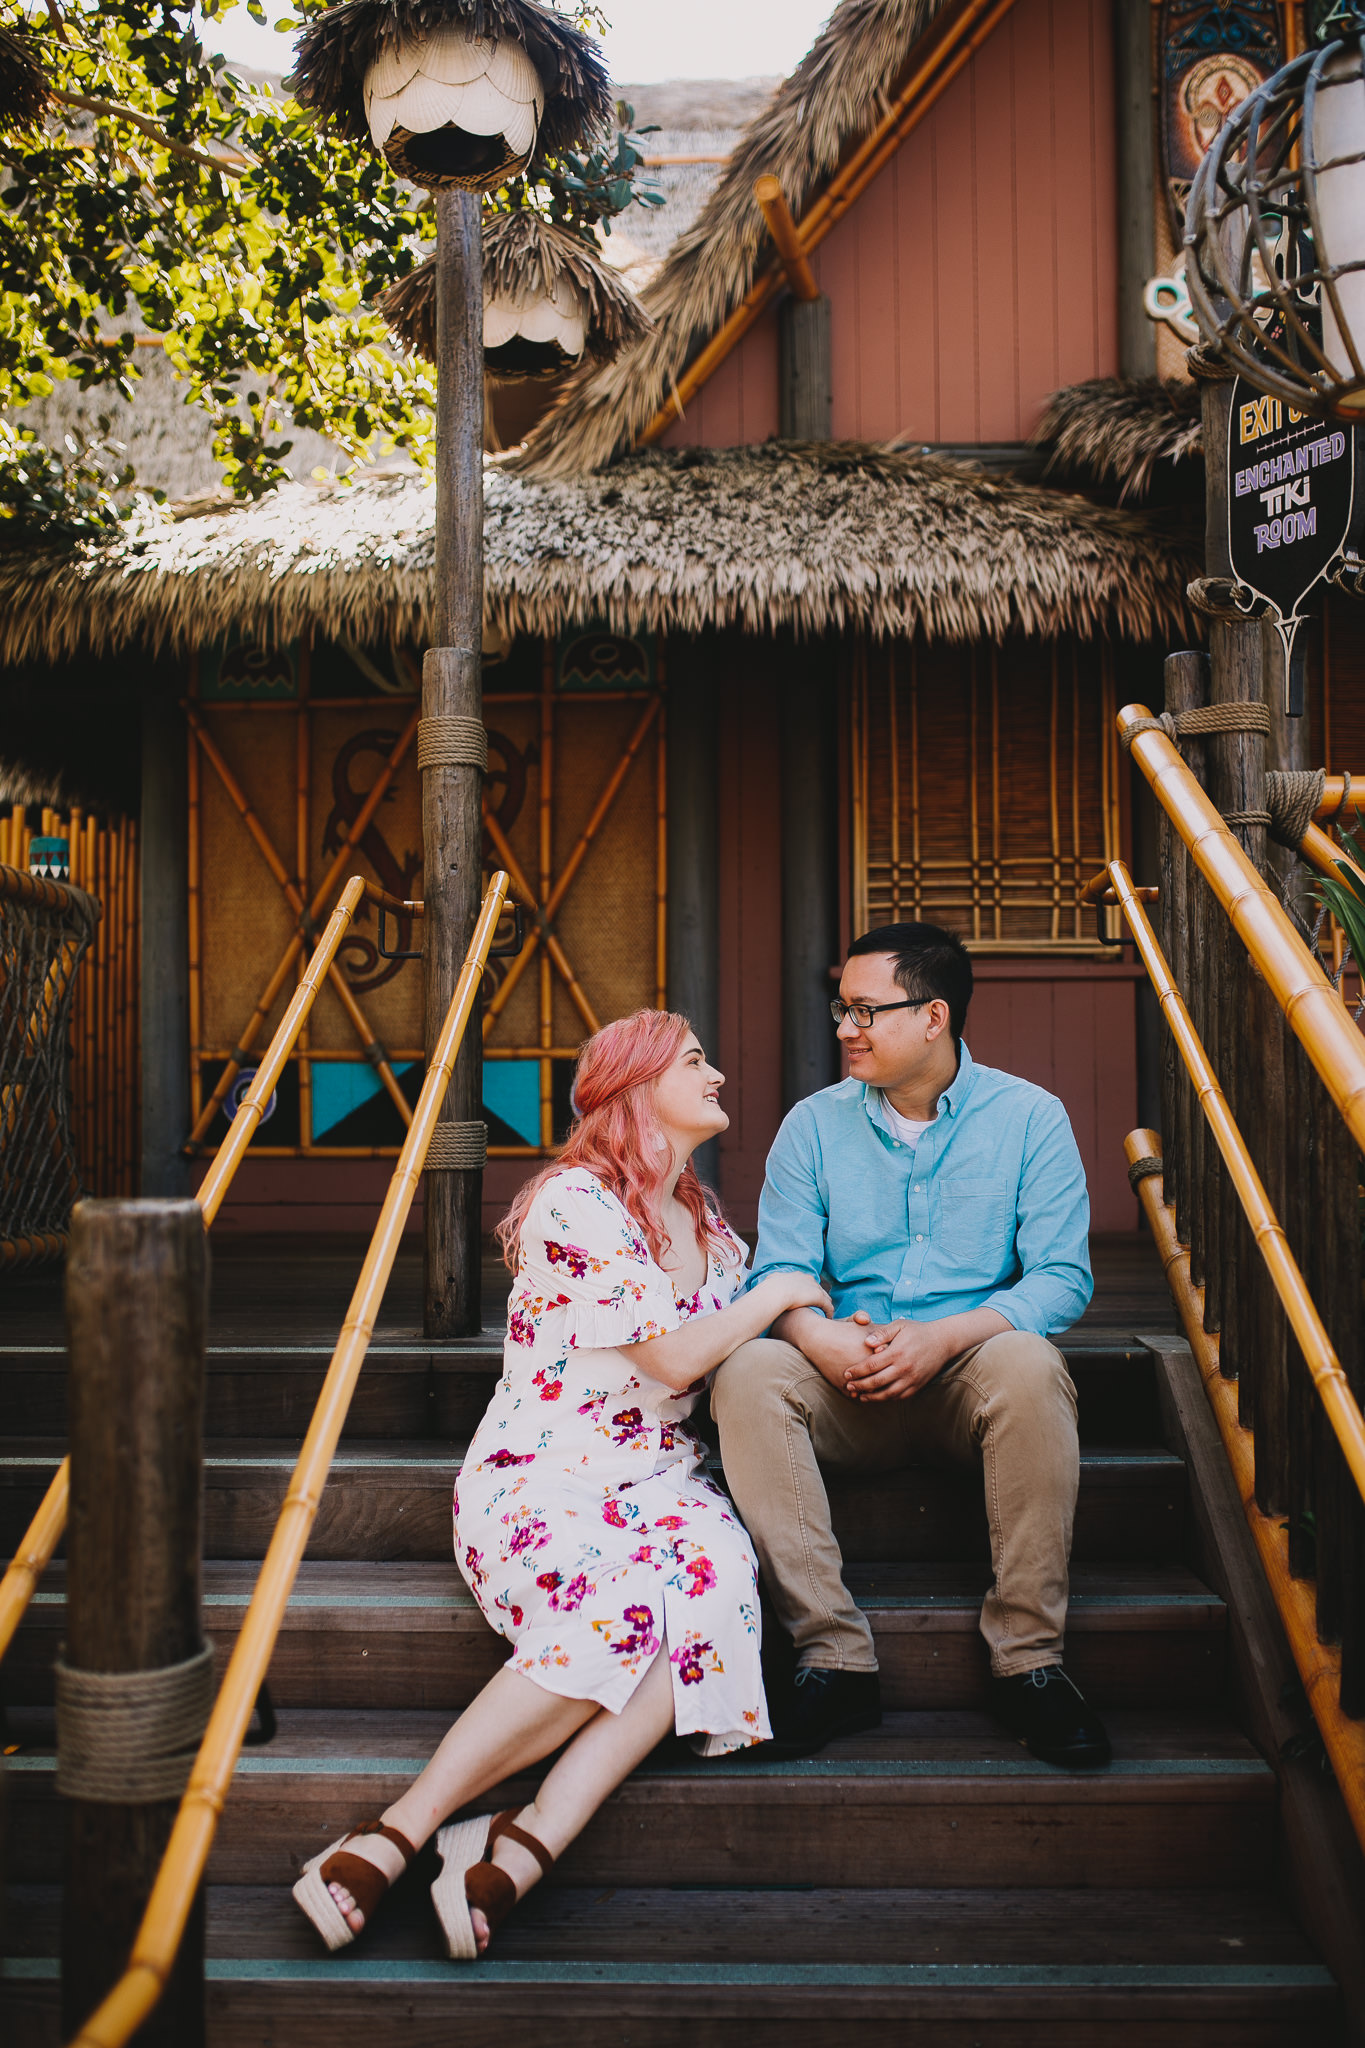 Archer Inspired Photography Disneyland Engagement Wedding Session Southern California Kayla and Kevin Lifestyle Documentary-49.jpg